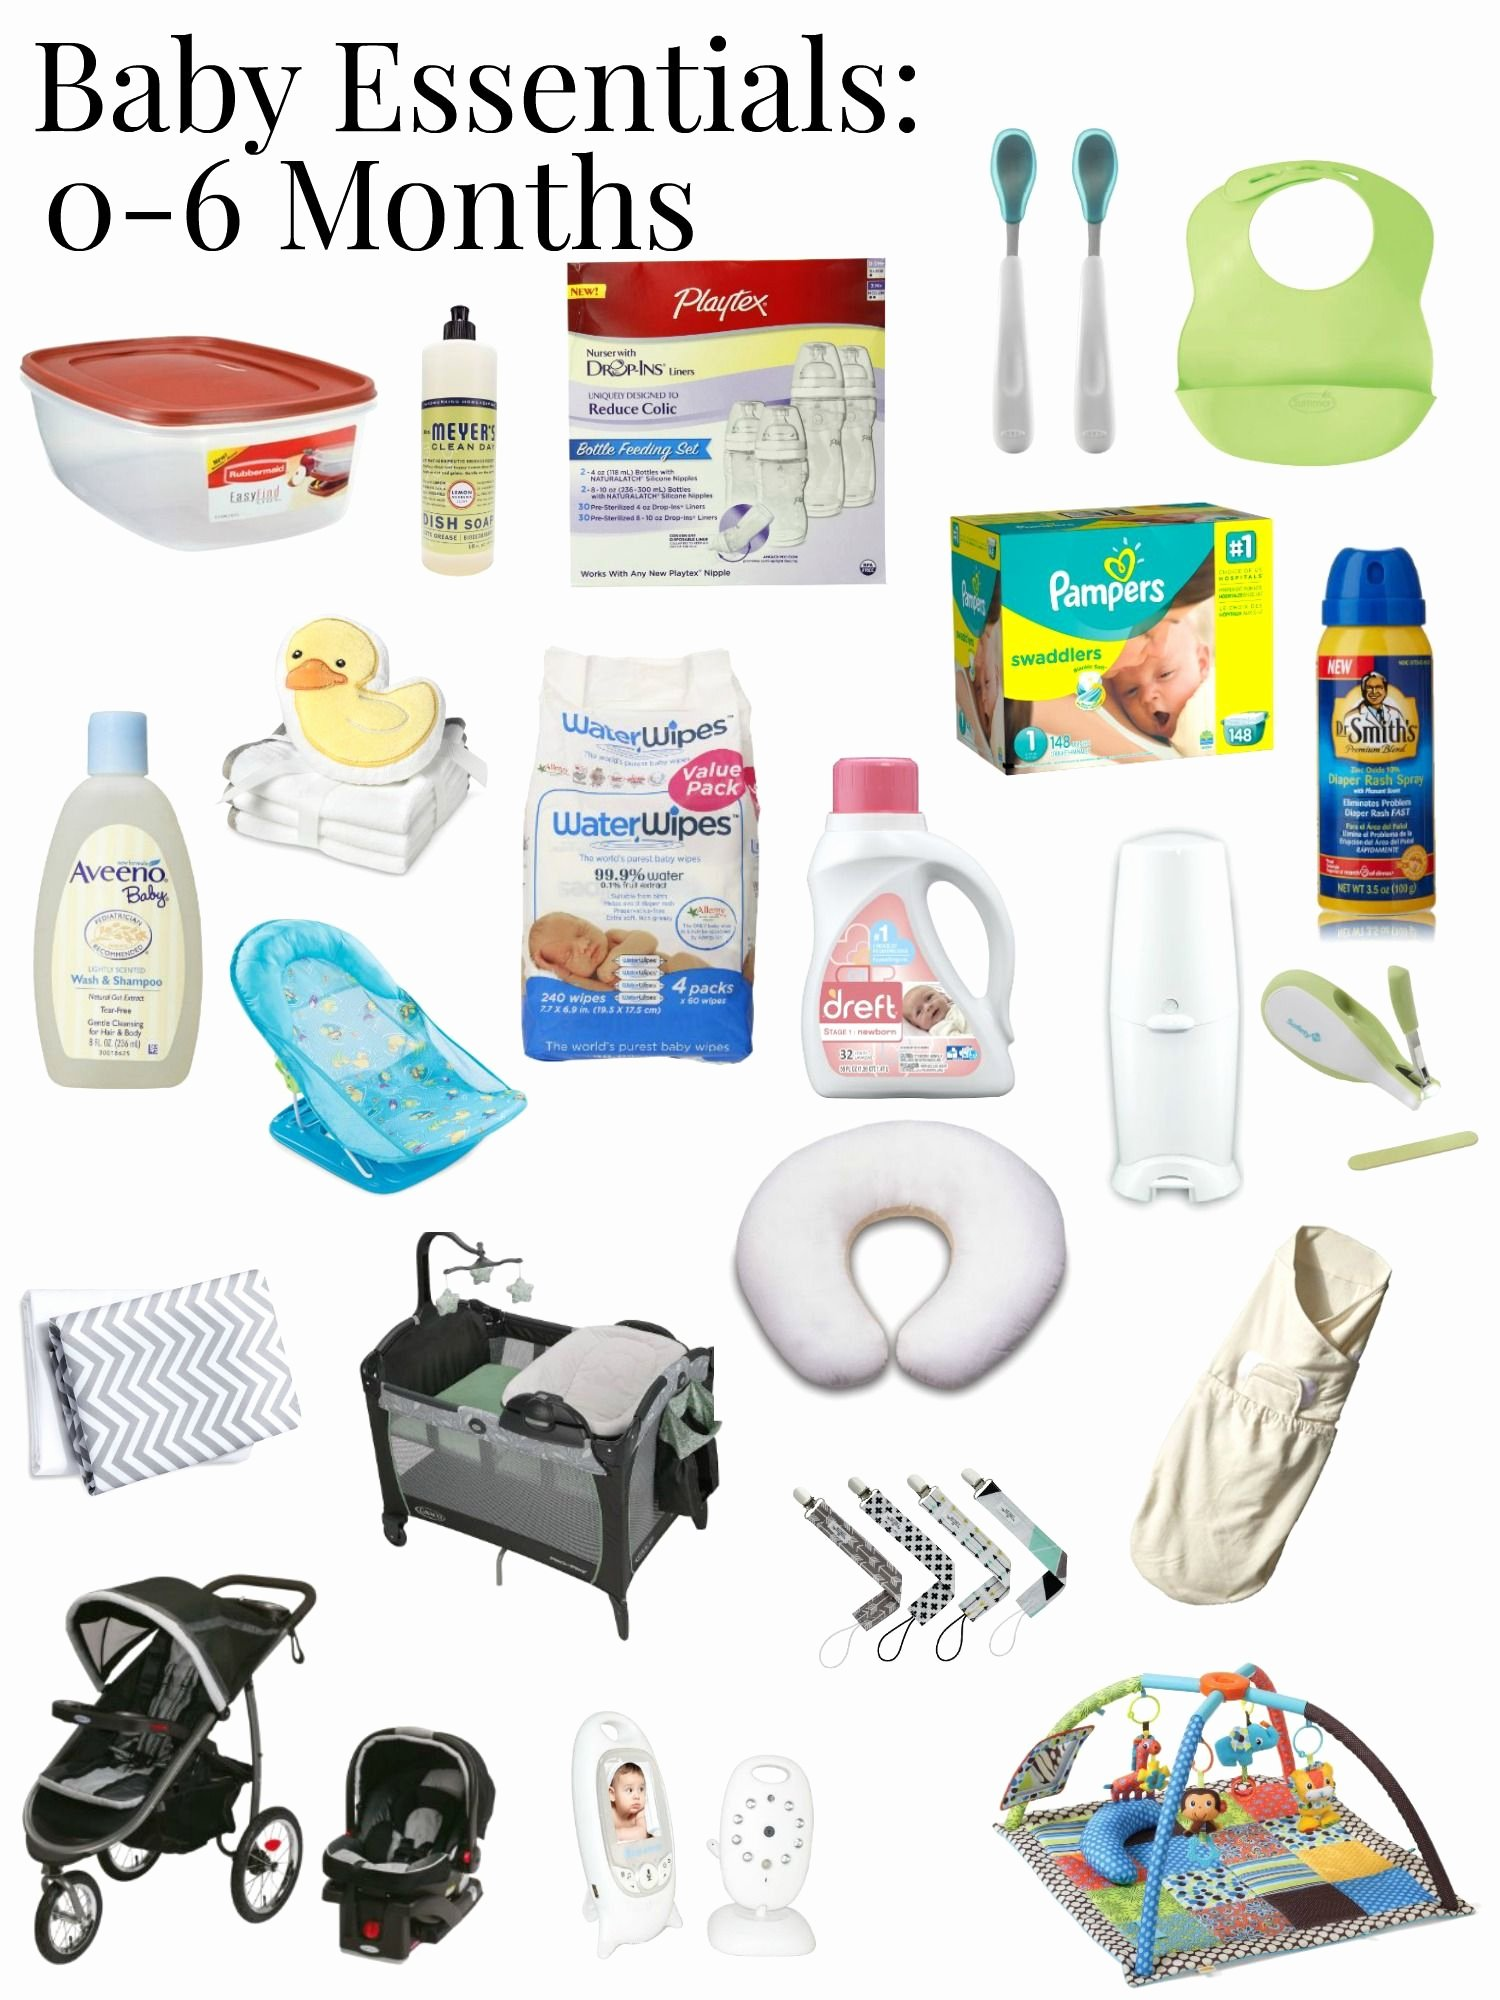 Newborn Essentials Checklist Best Of A Great List Of True Baby Essentials for the First 6